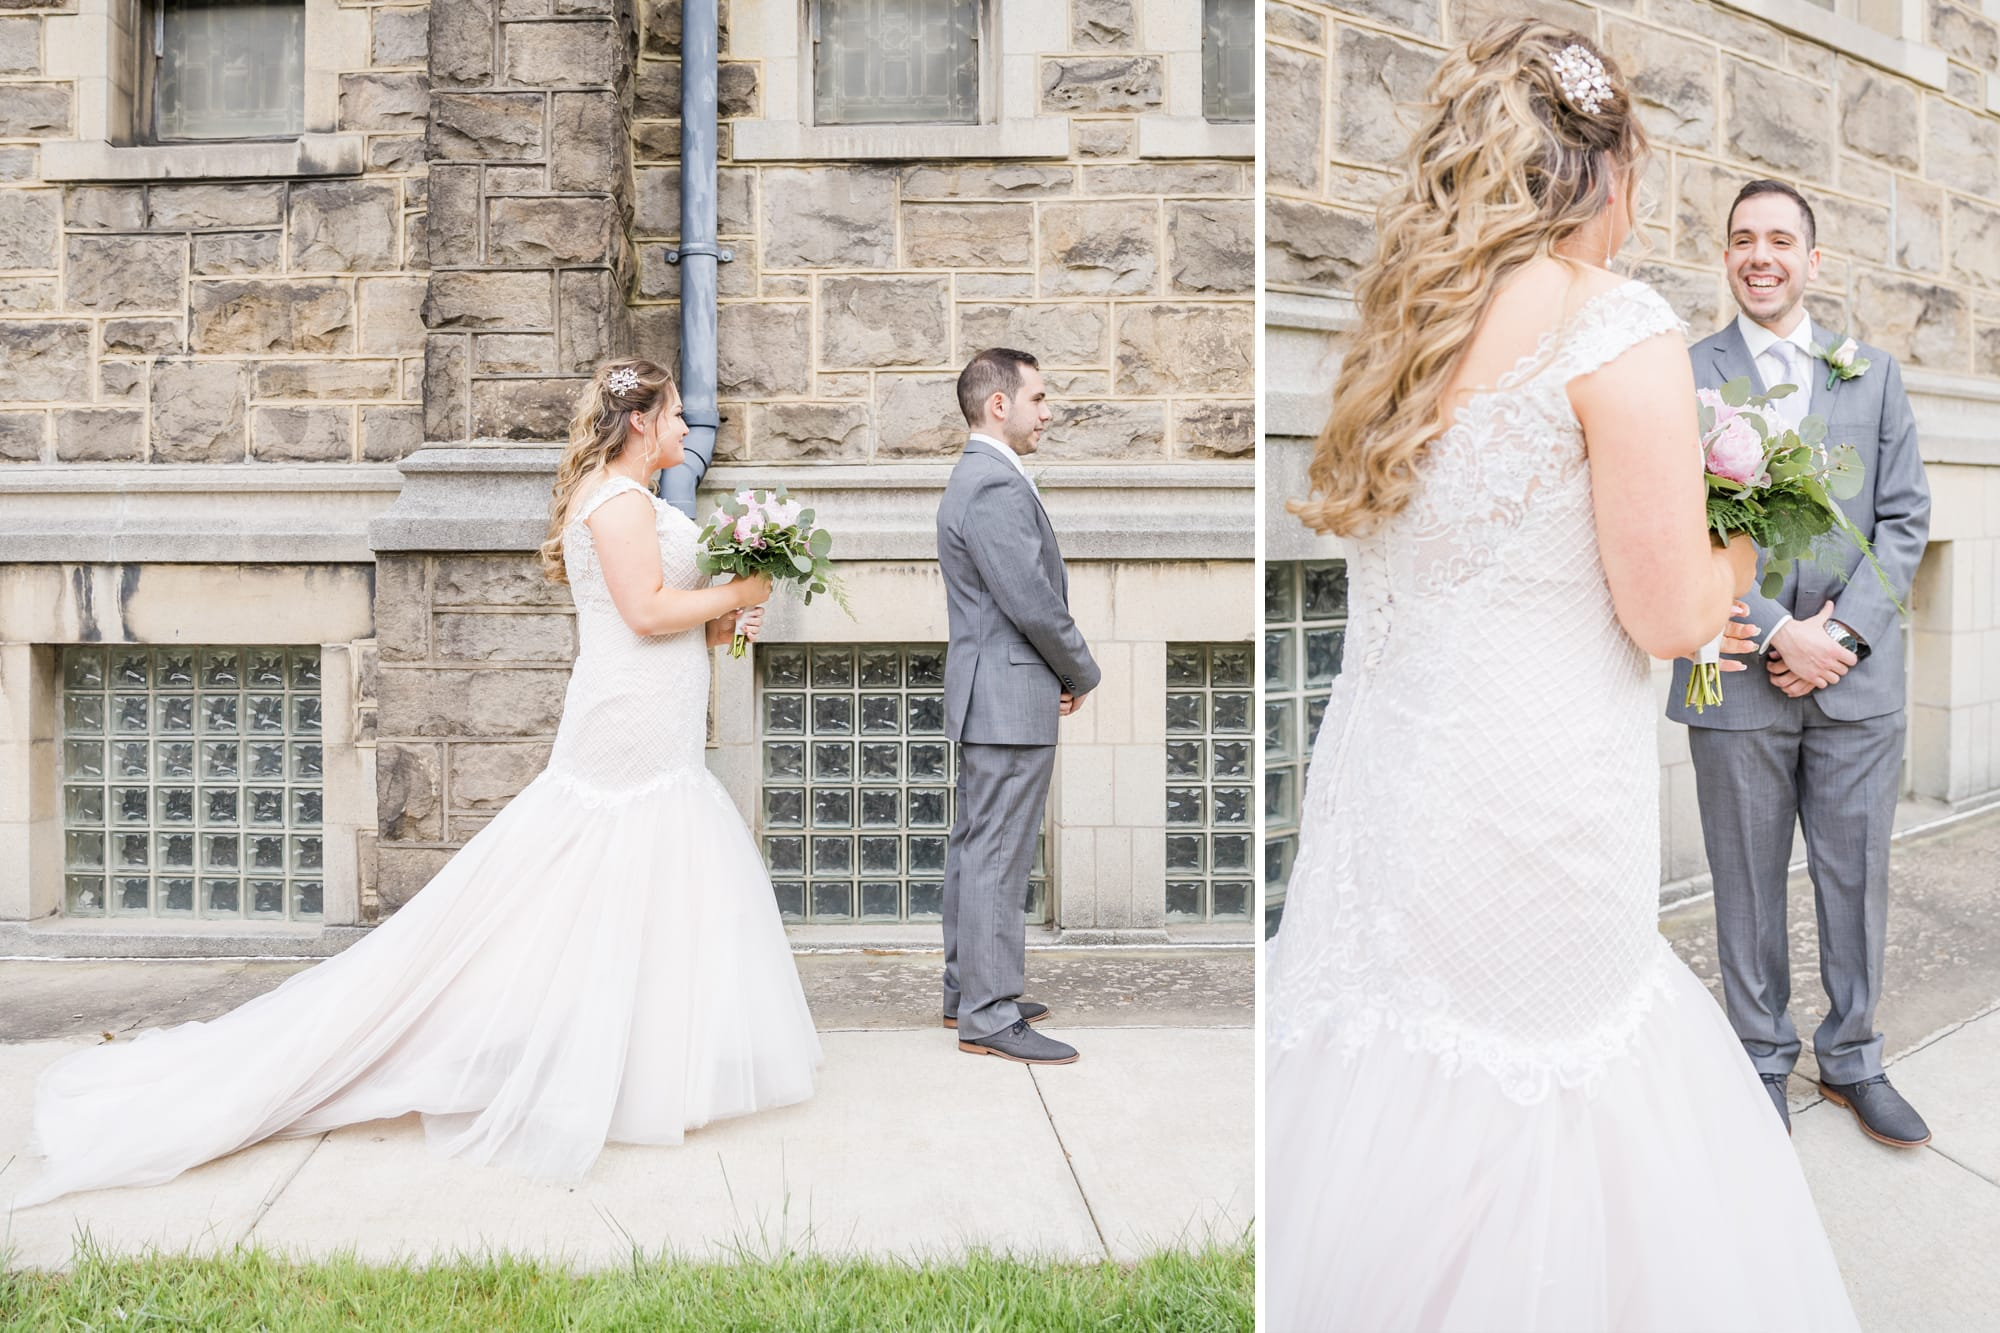 Central Pennsylvania PA summer wedding first look between bride and groom